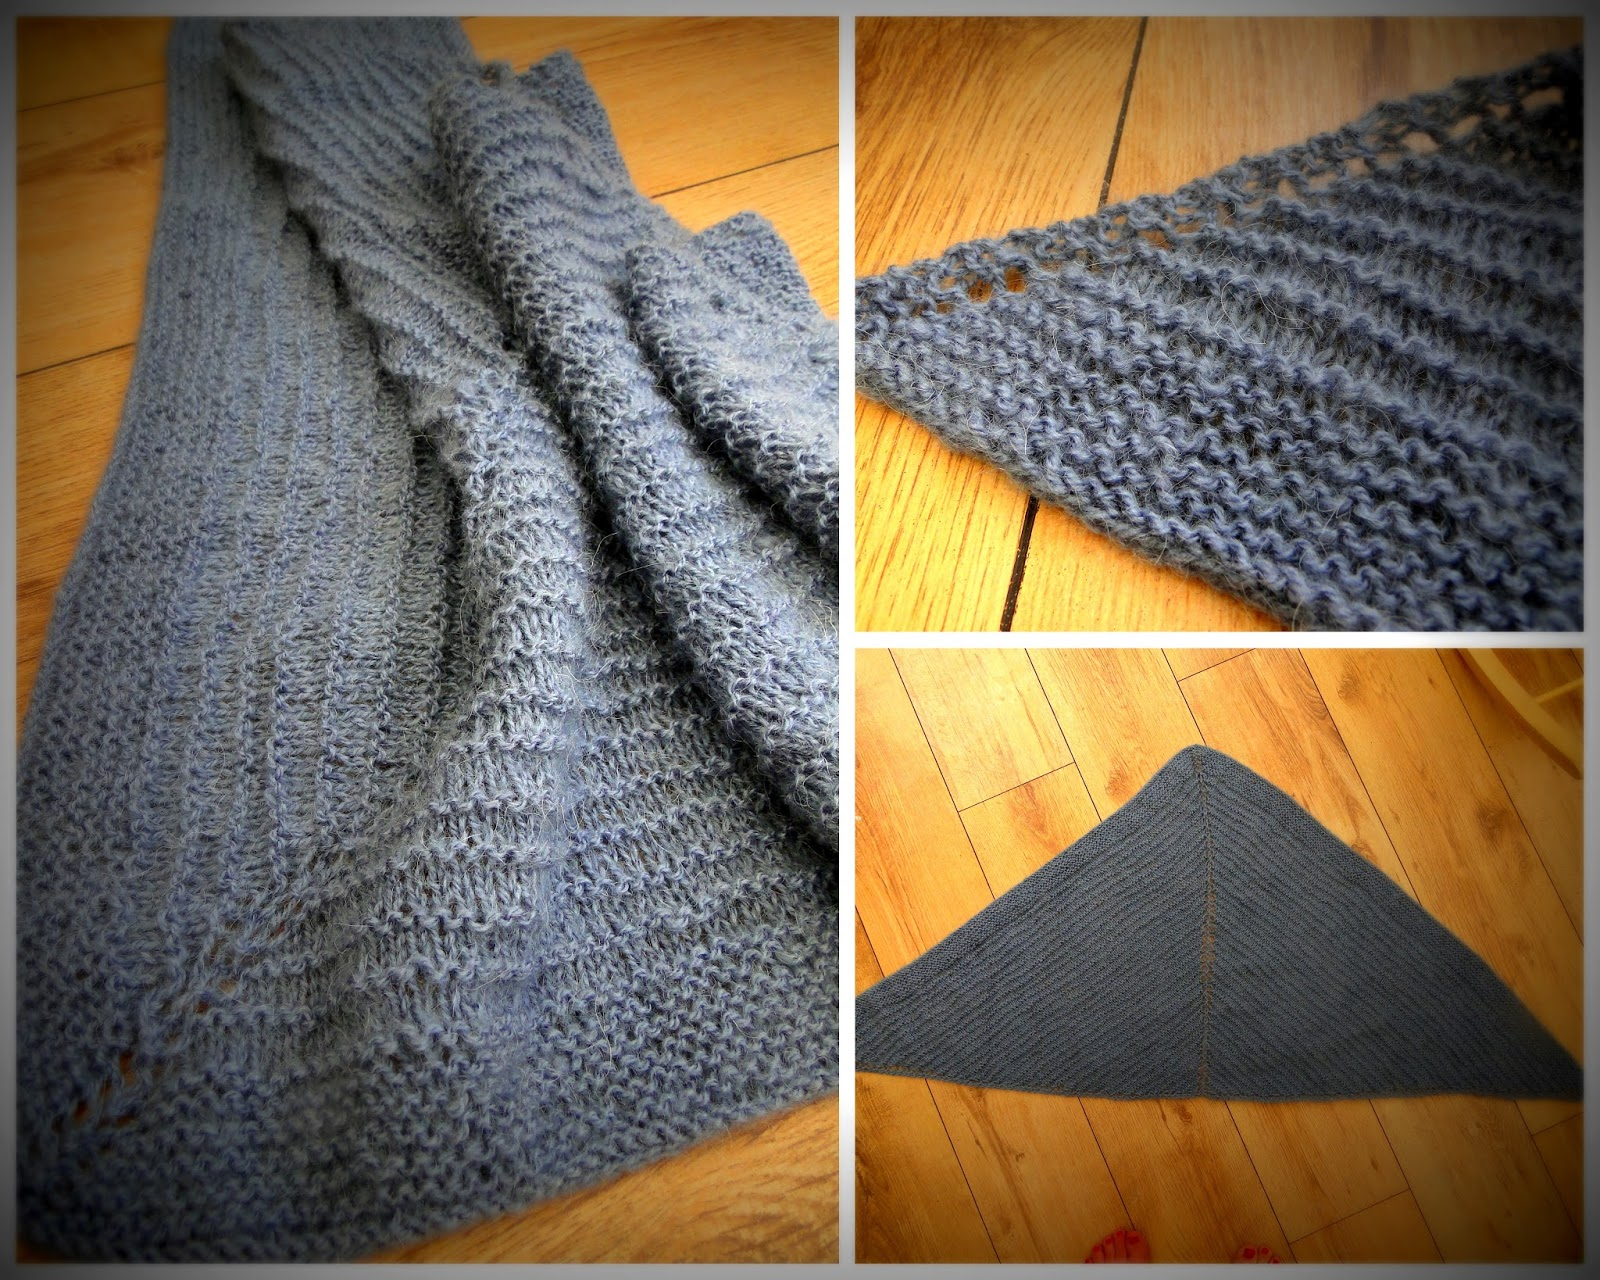 Easy Shawl Knitting Pattern Free : Rabbits patterns very easy free shawl knitting pattern